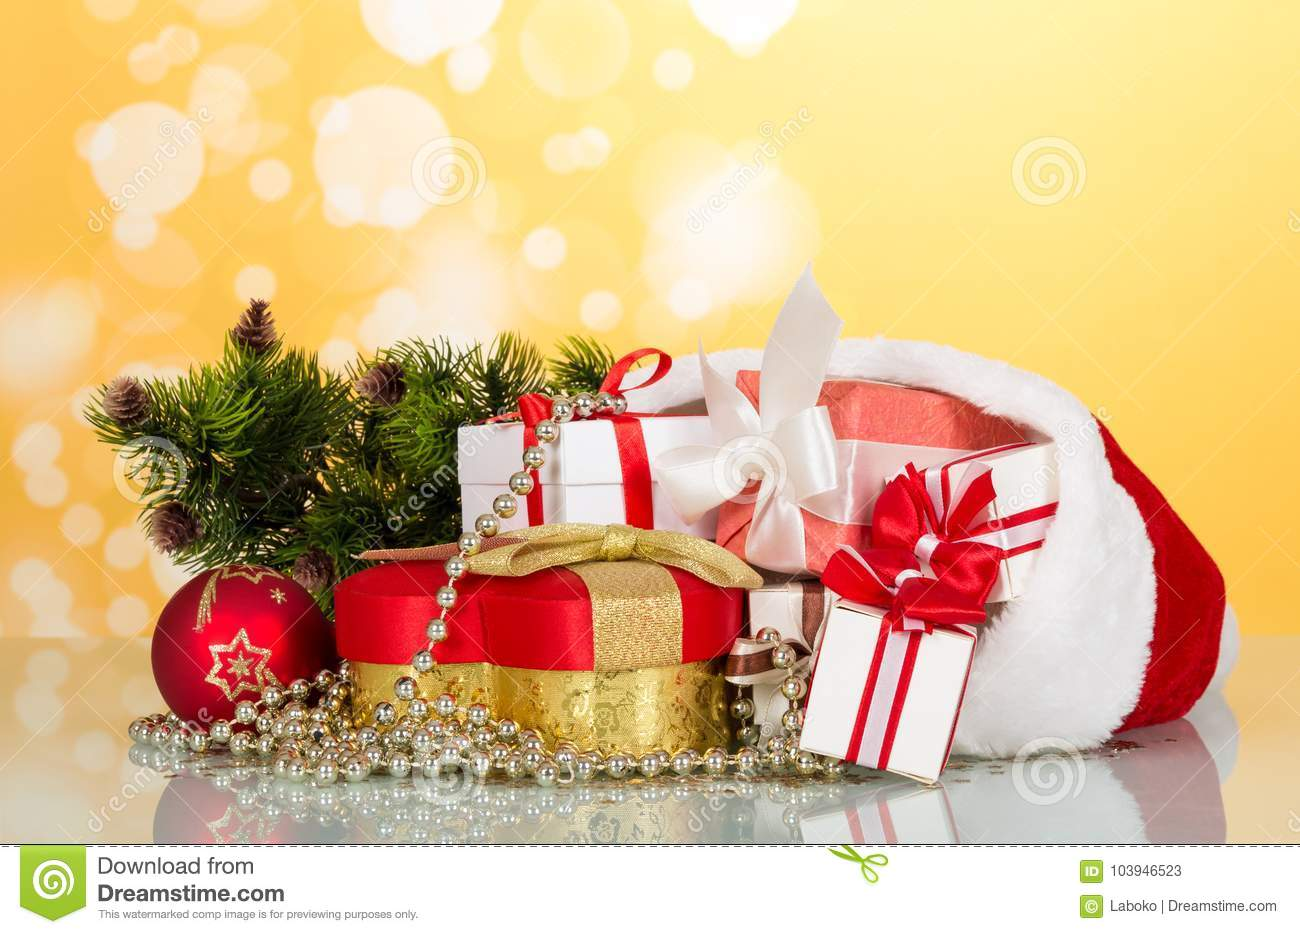 large and small boxes in the header of santa claus next to gift in heart shaped decorations for the christmas tree on bright yellow background - Christmas Decorations Large Santa Claus